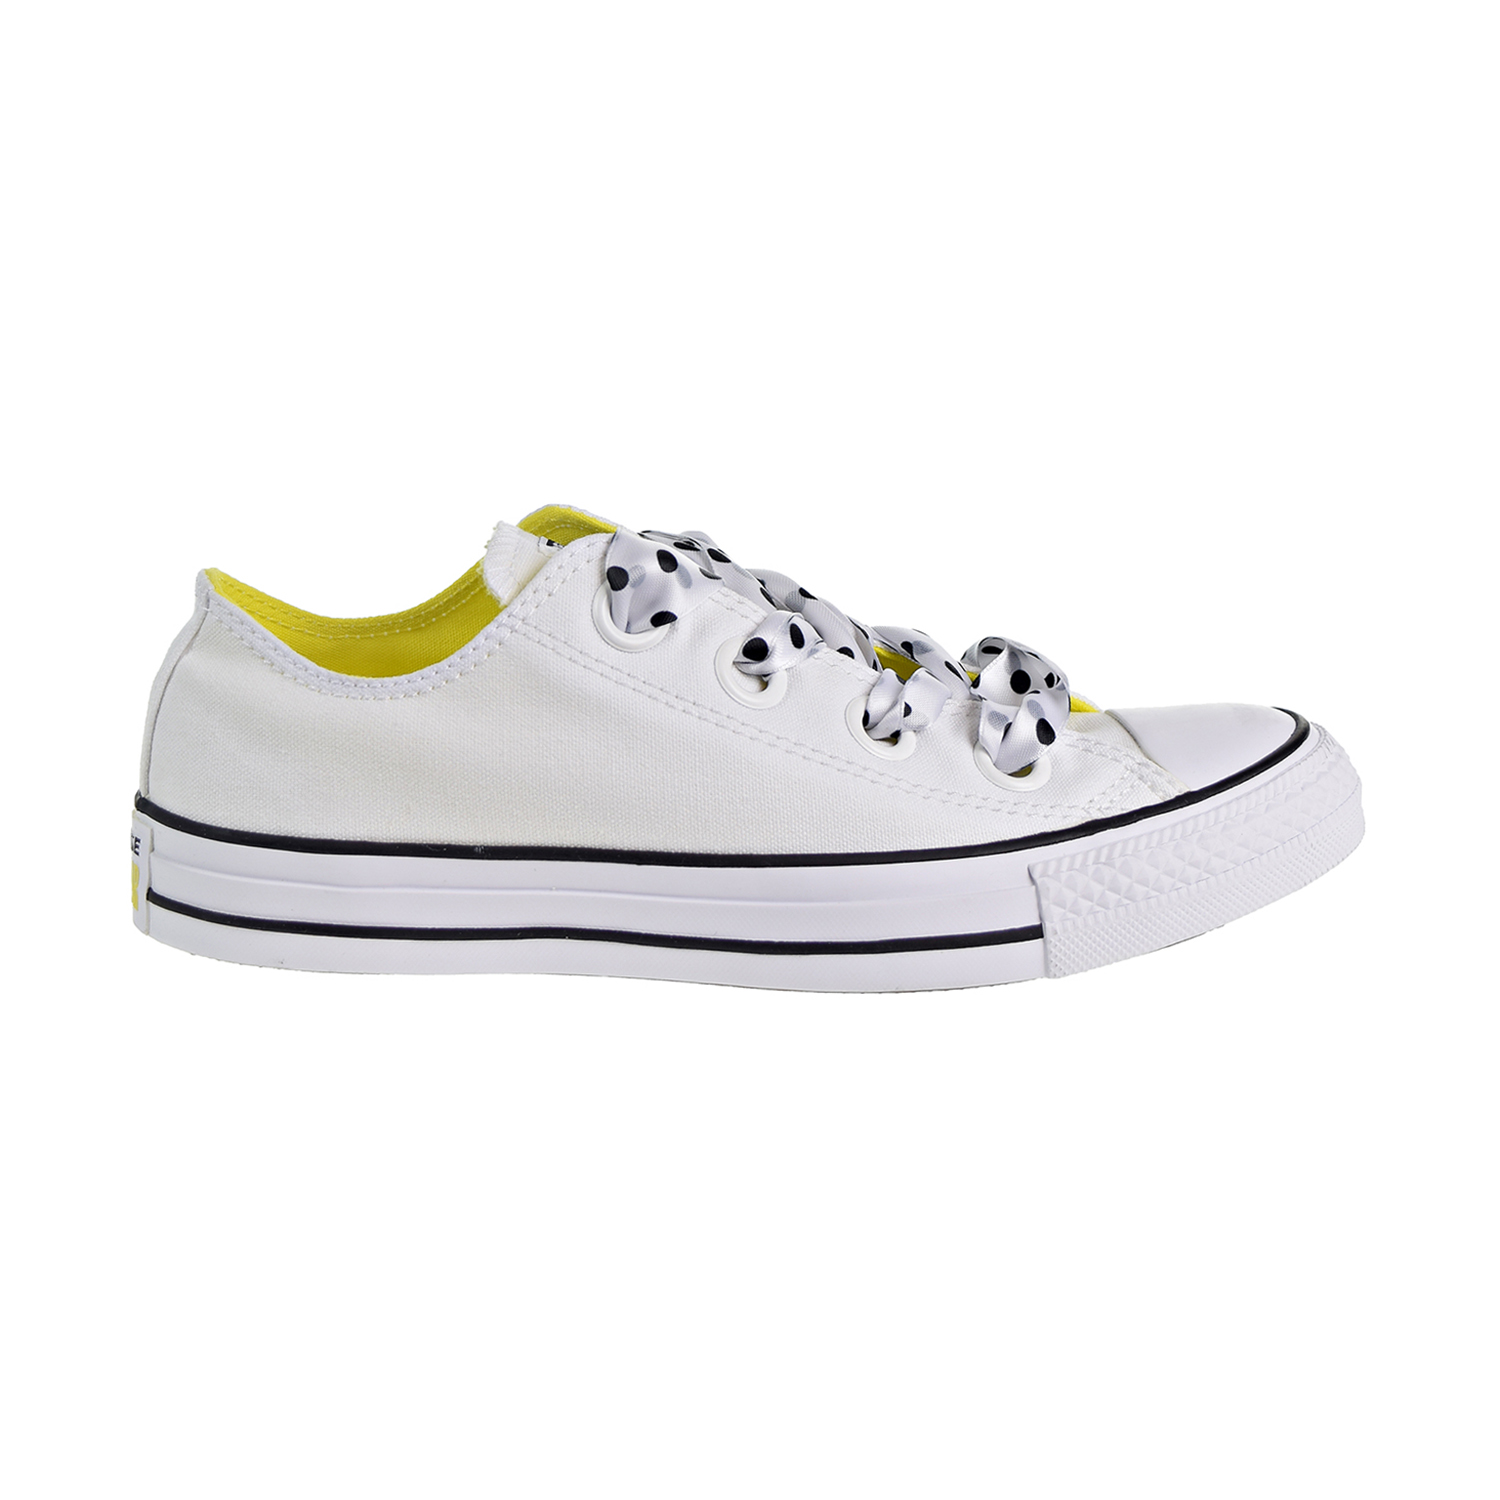 159b443cb844 Converse Chuck Taylor All Star Big Eyelets OX Women s Shoes White Yellow  Black 560670c